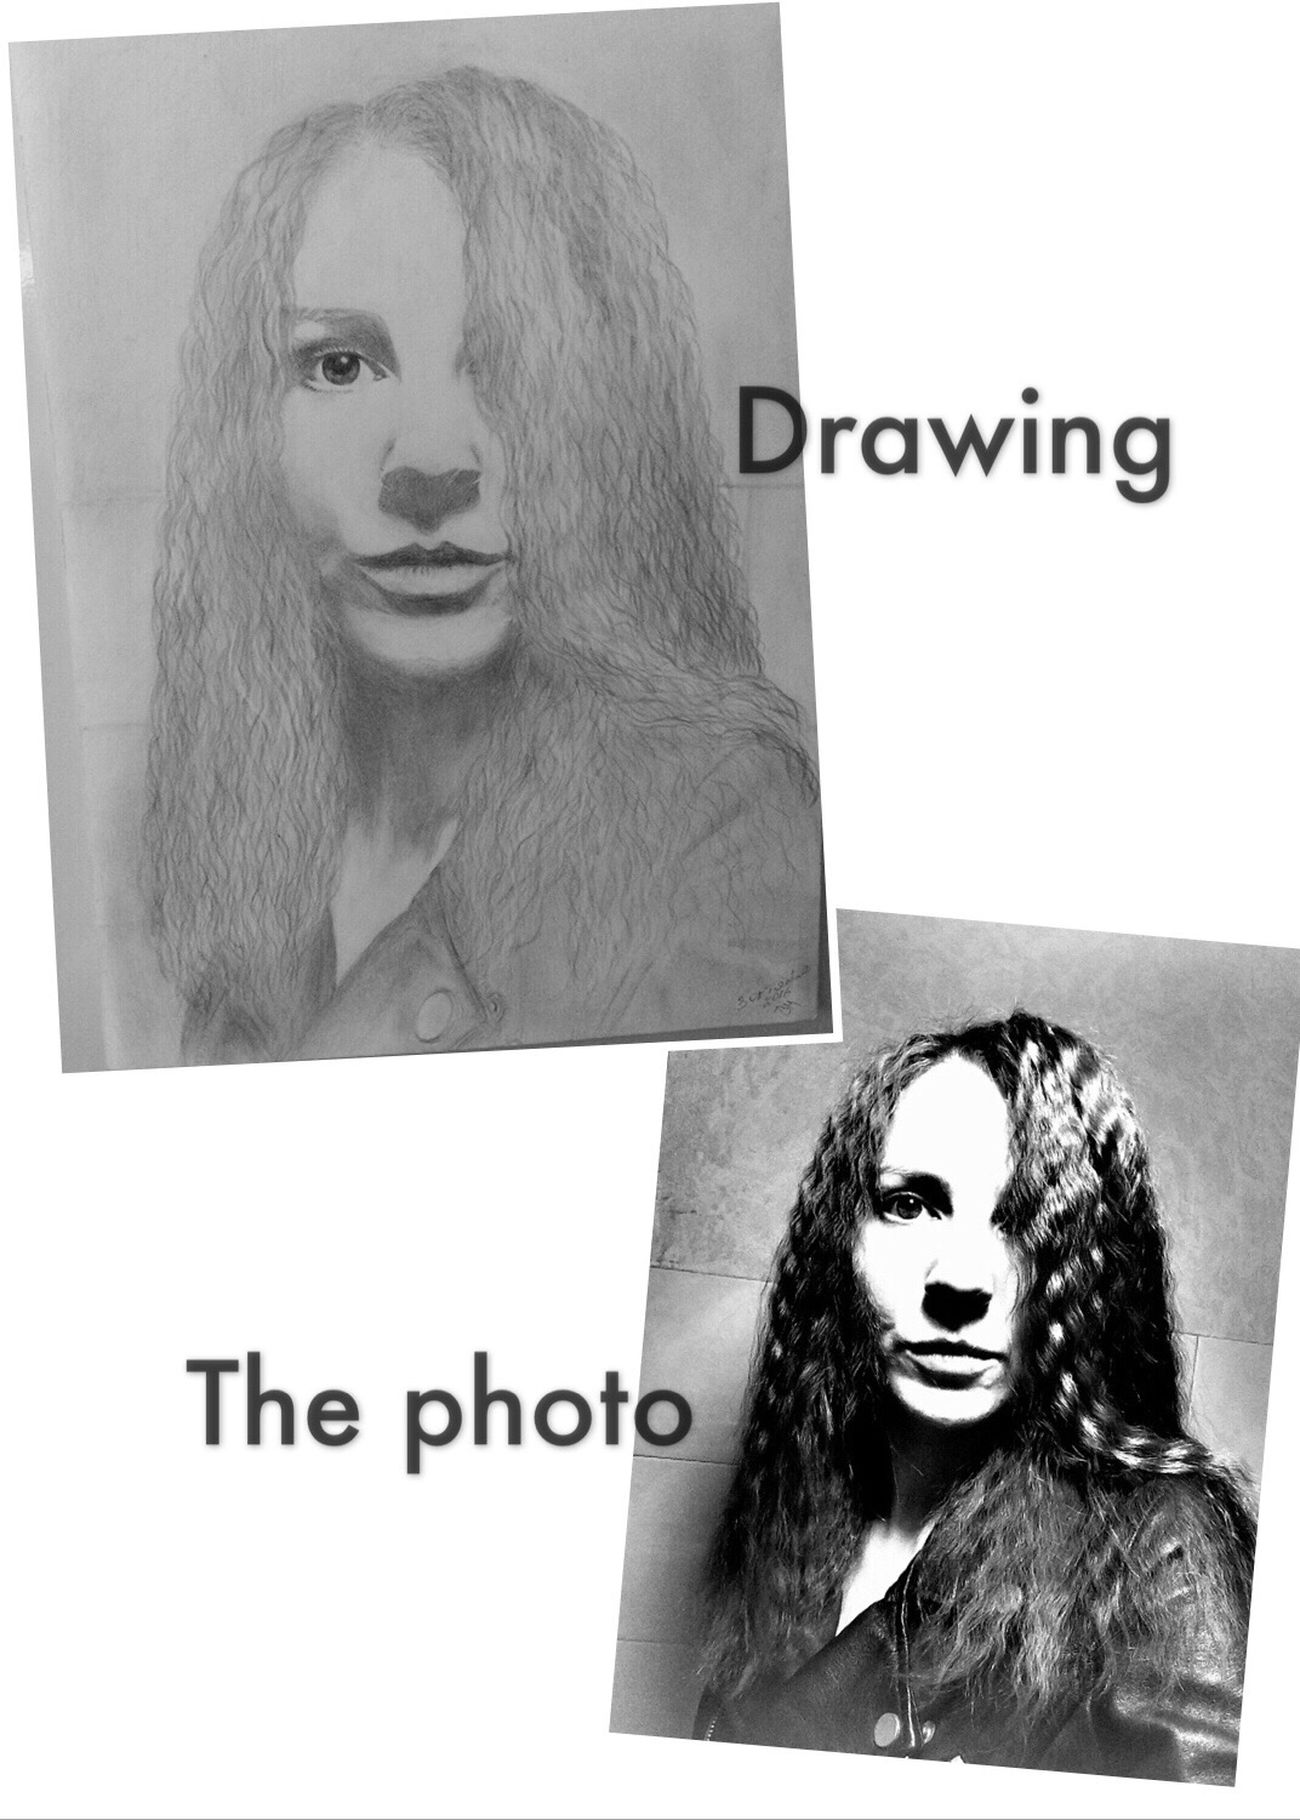 I'm not an artist, but somehow one sleepless night, I decided to try to draw something, well, caught my eye, my photo) overnight to sketch, draw, and drew a)) turned out such a self-portrait) as you? Drawing Sketch Autoportrait Picture Art Pencil Photography Illustration Design Graphic